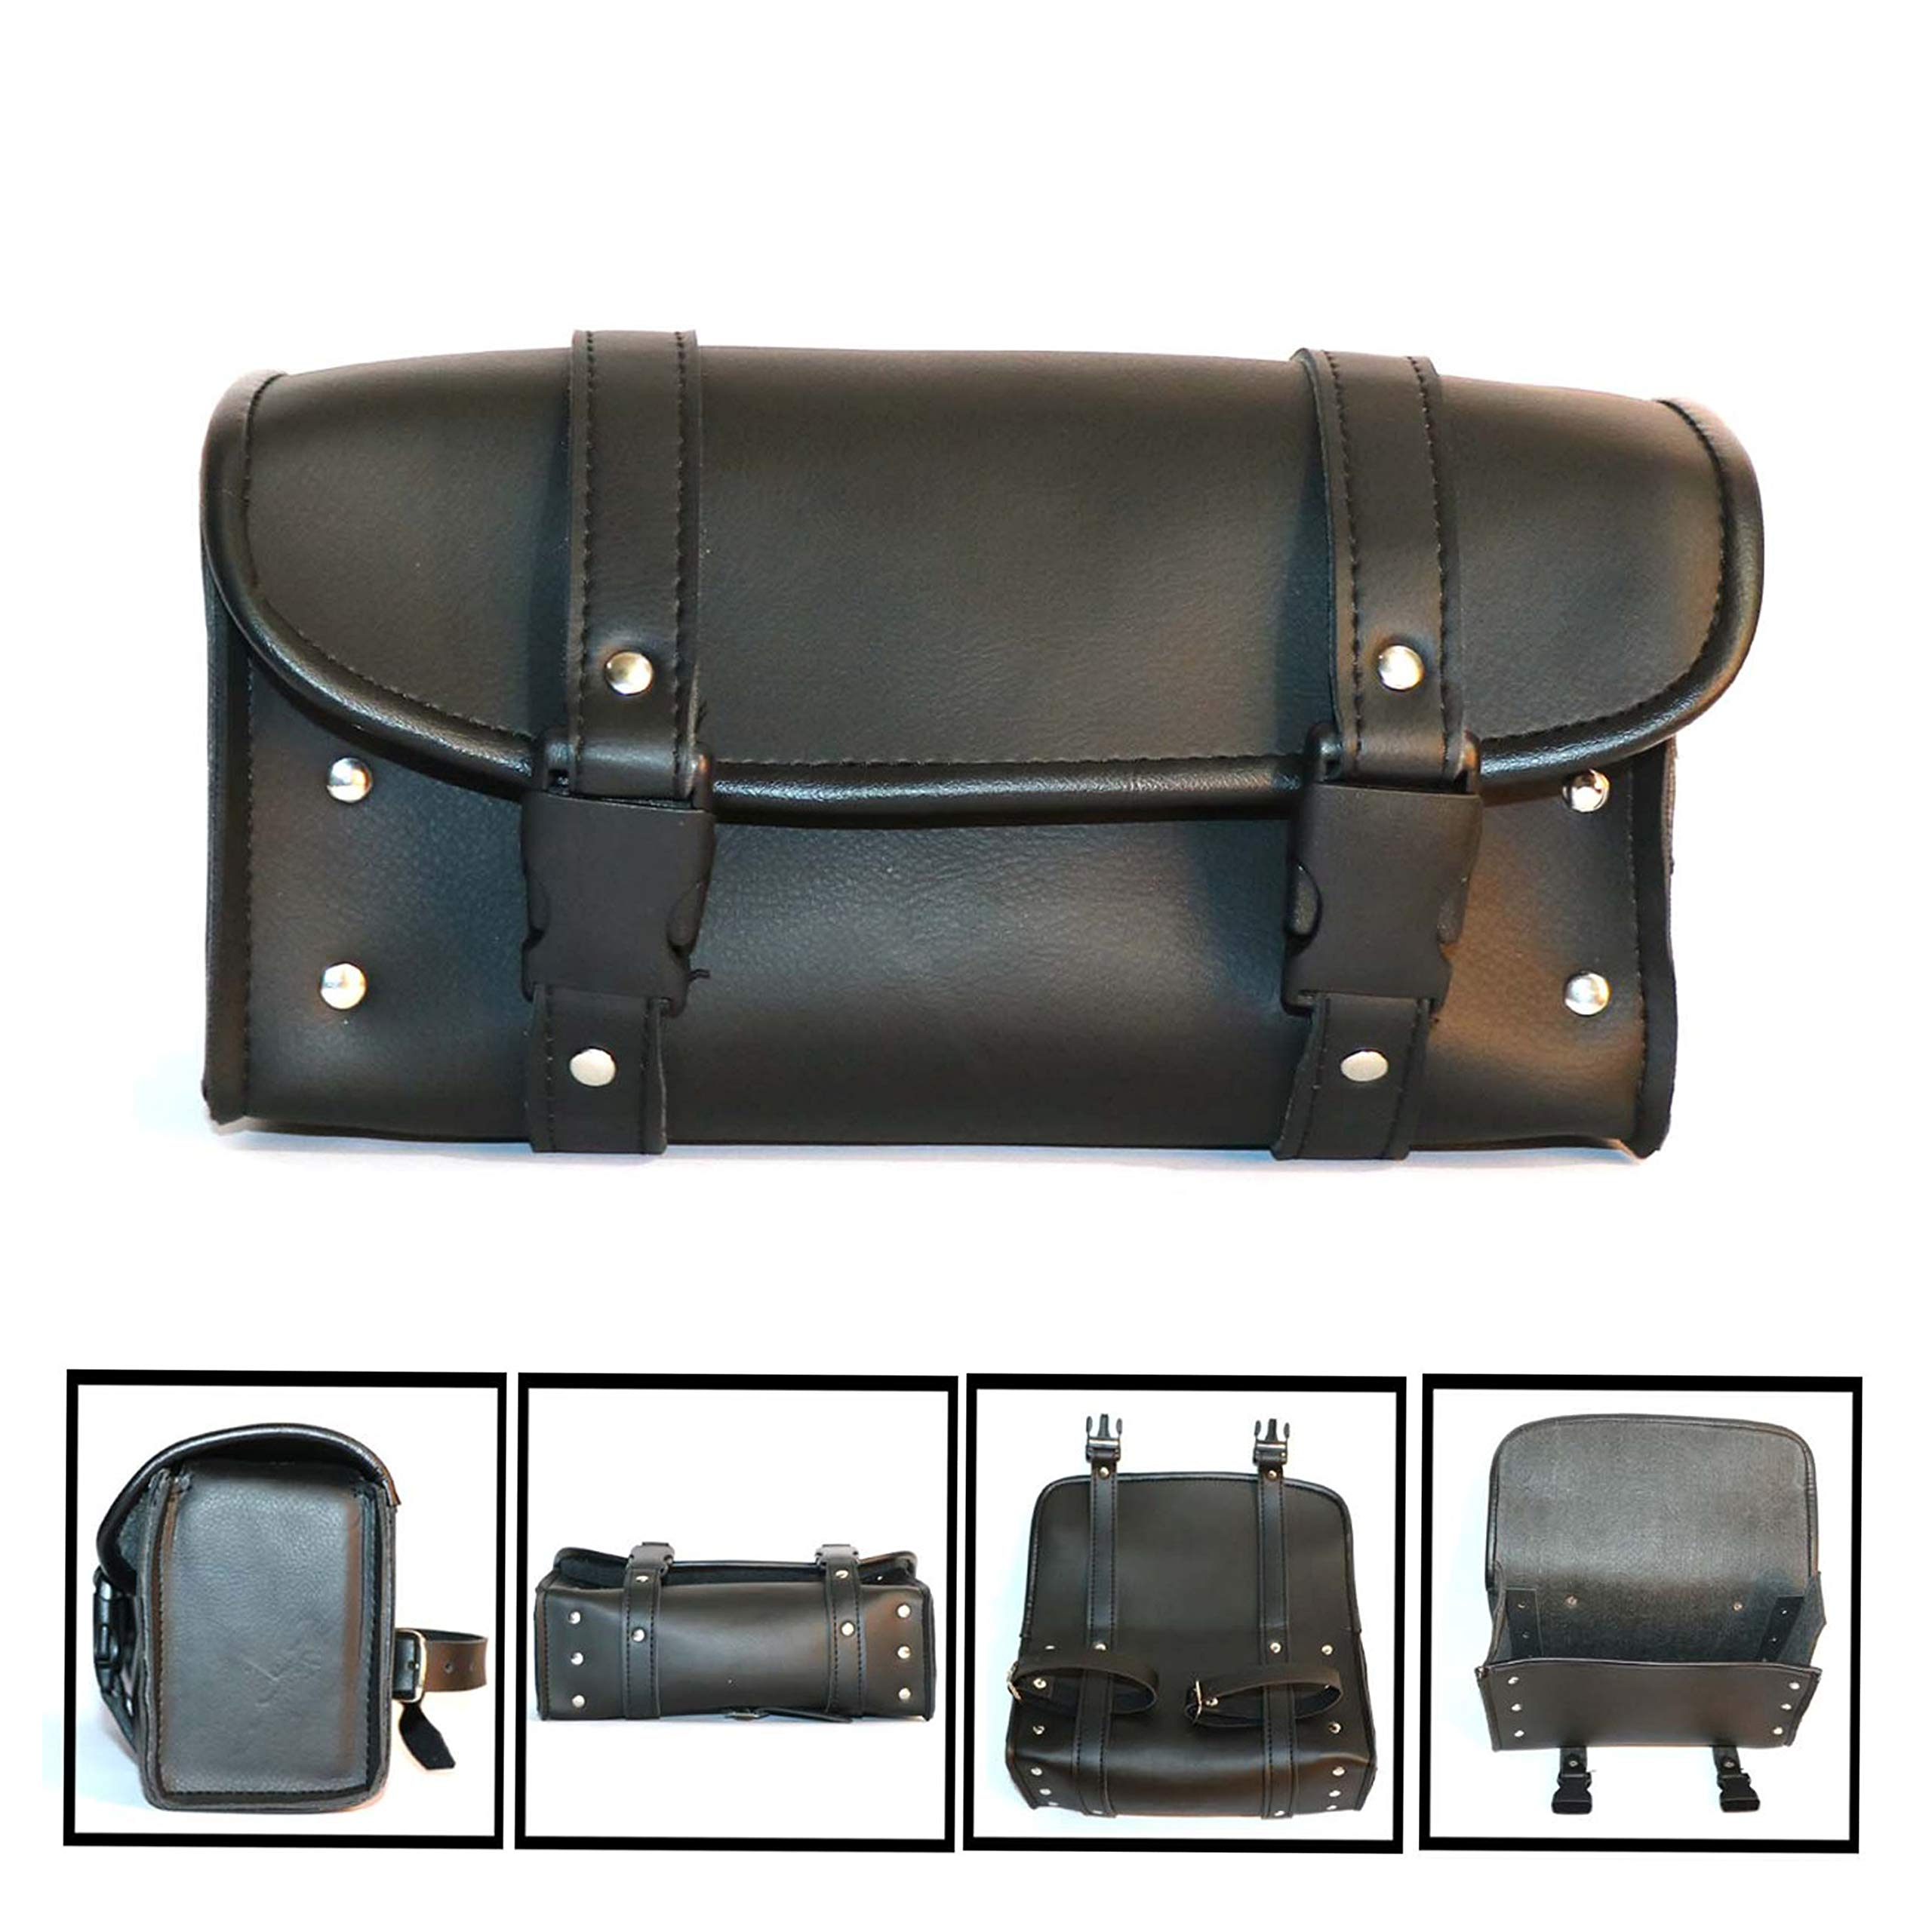 F FIERCE CYCLE Motorbike Black Synthetic Leather Saddlebag Luggage Pouch Tool Bags with Metal Buckle